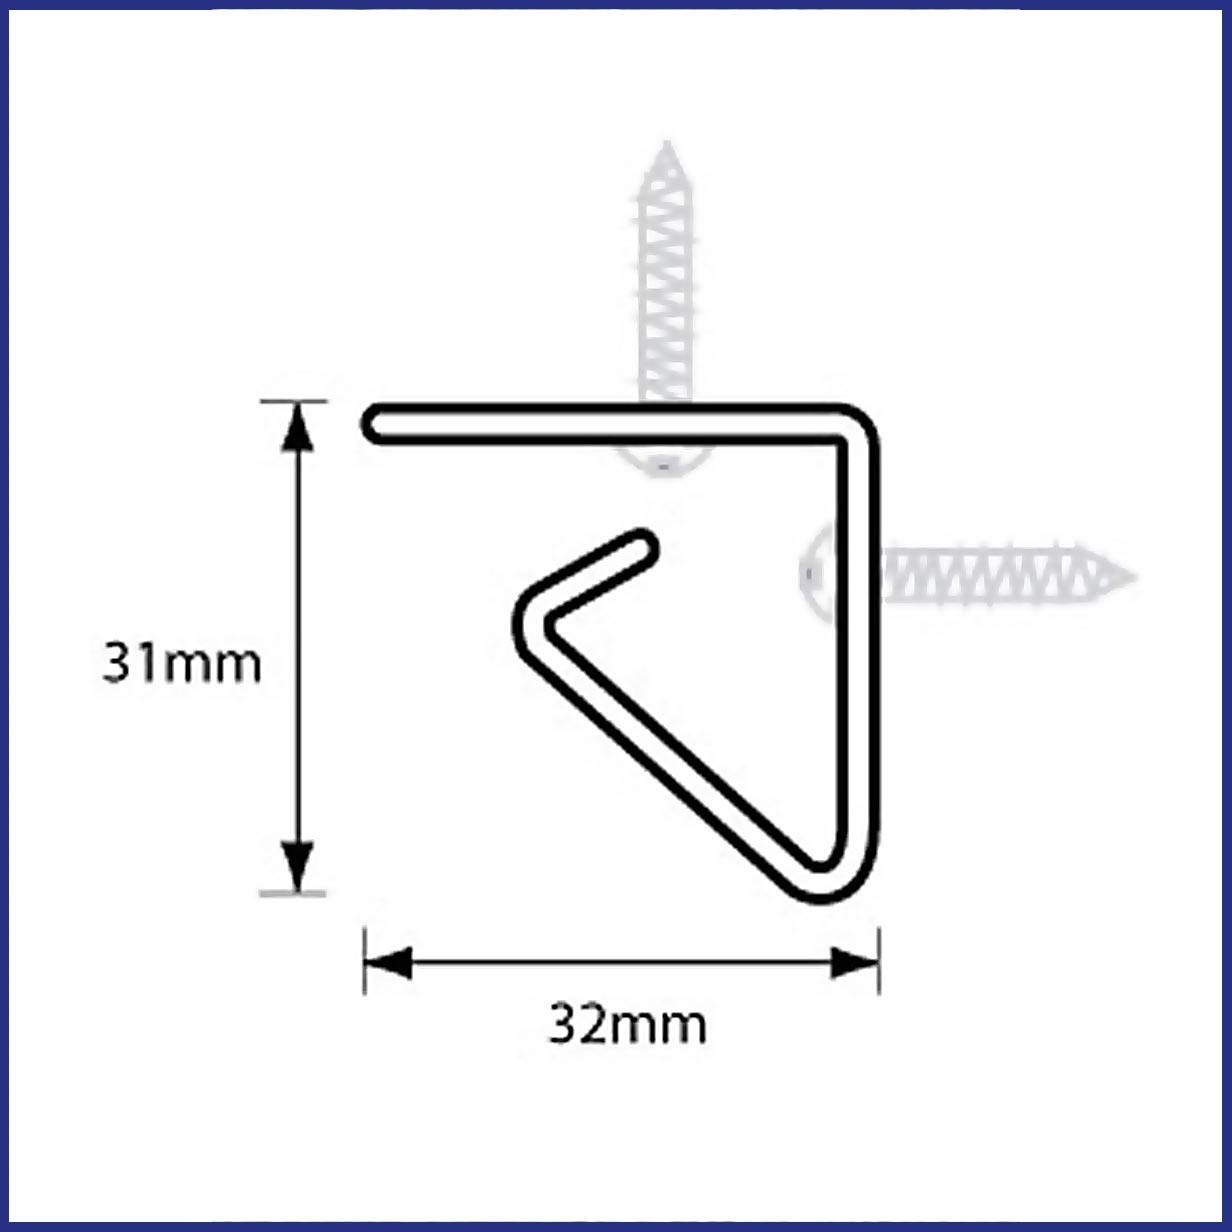 Profile and dimensions of hooked stainless steel track